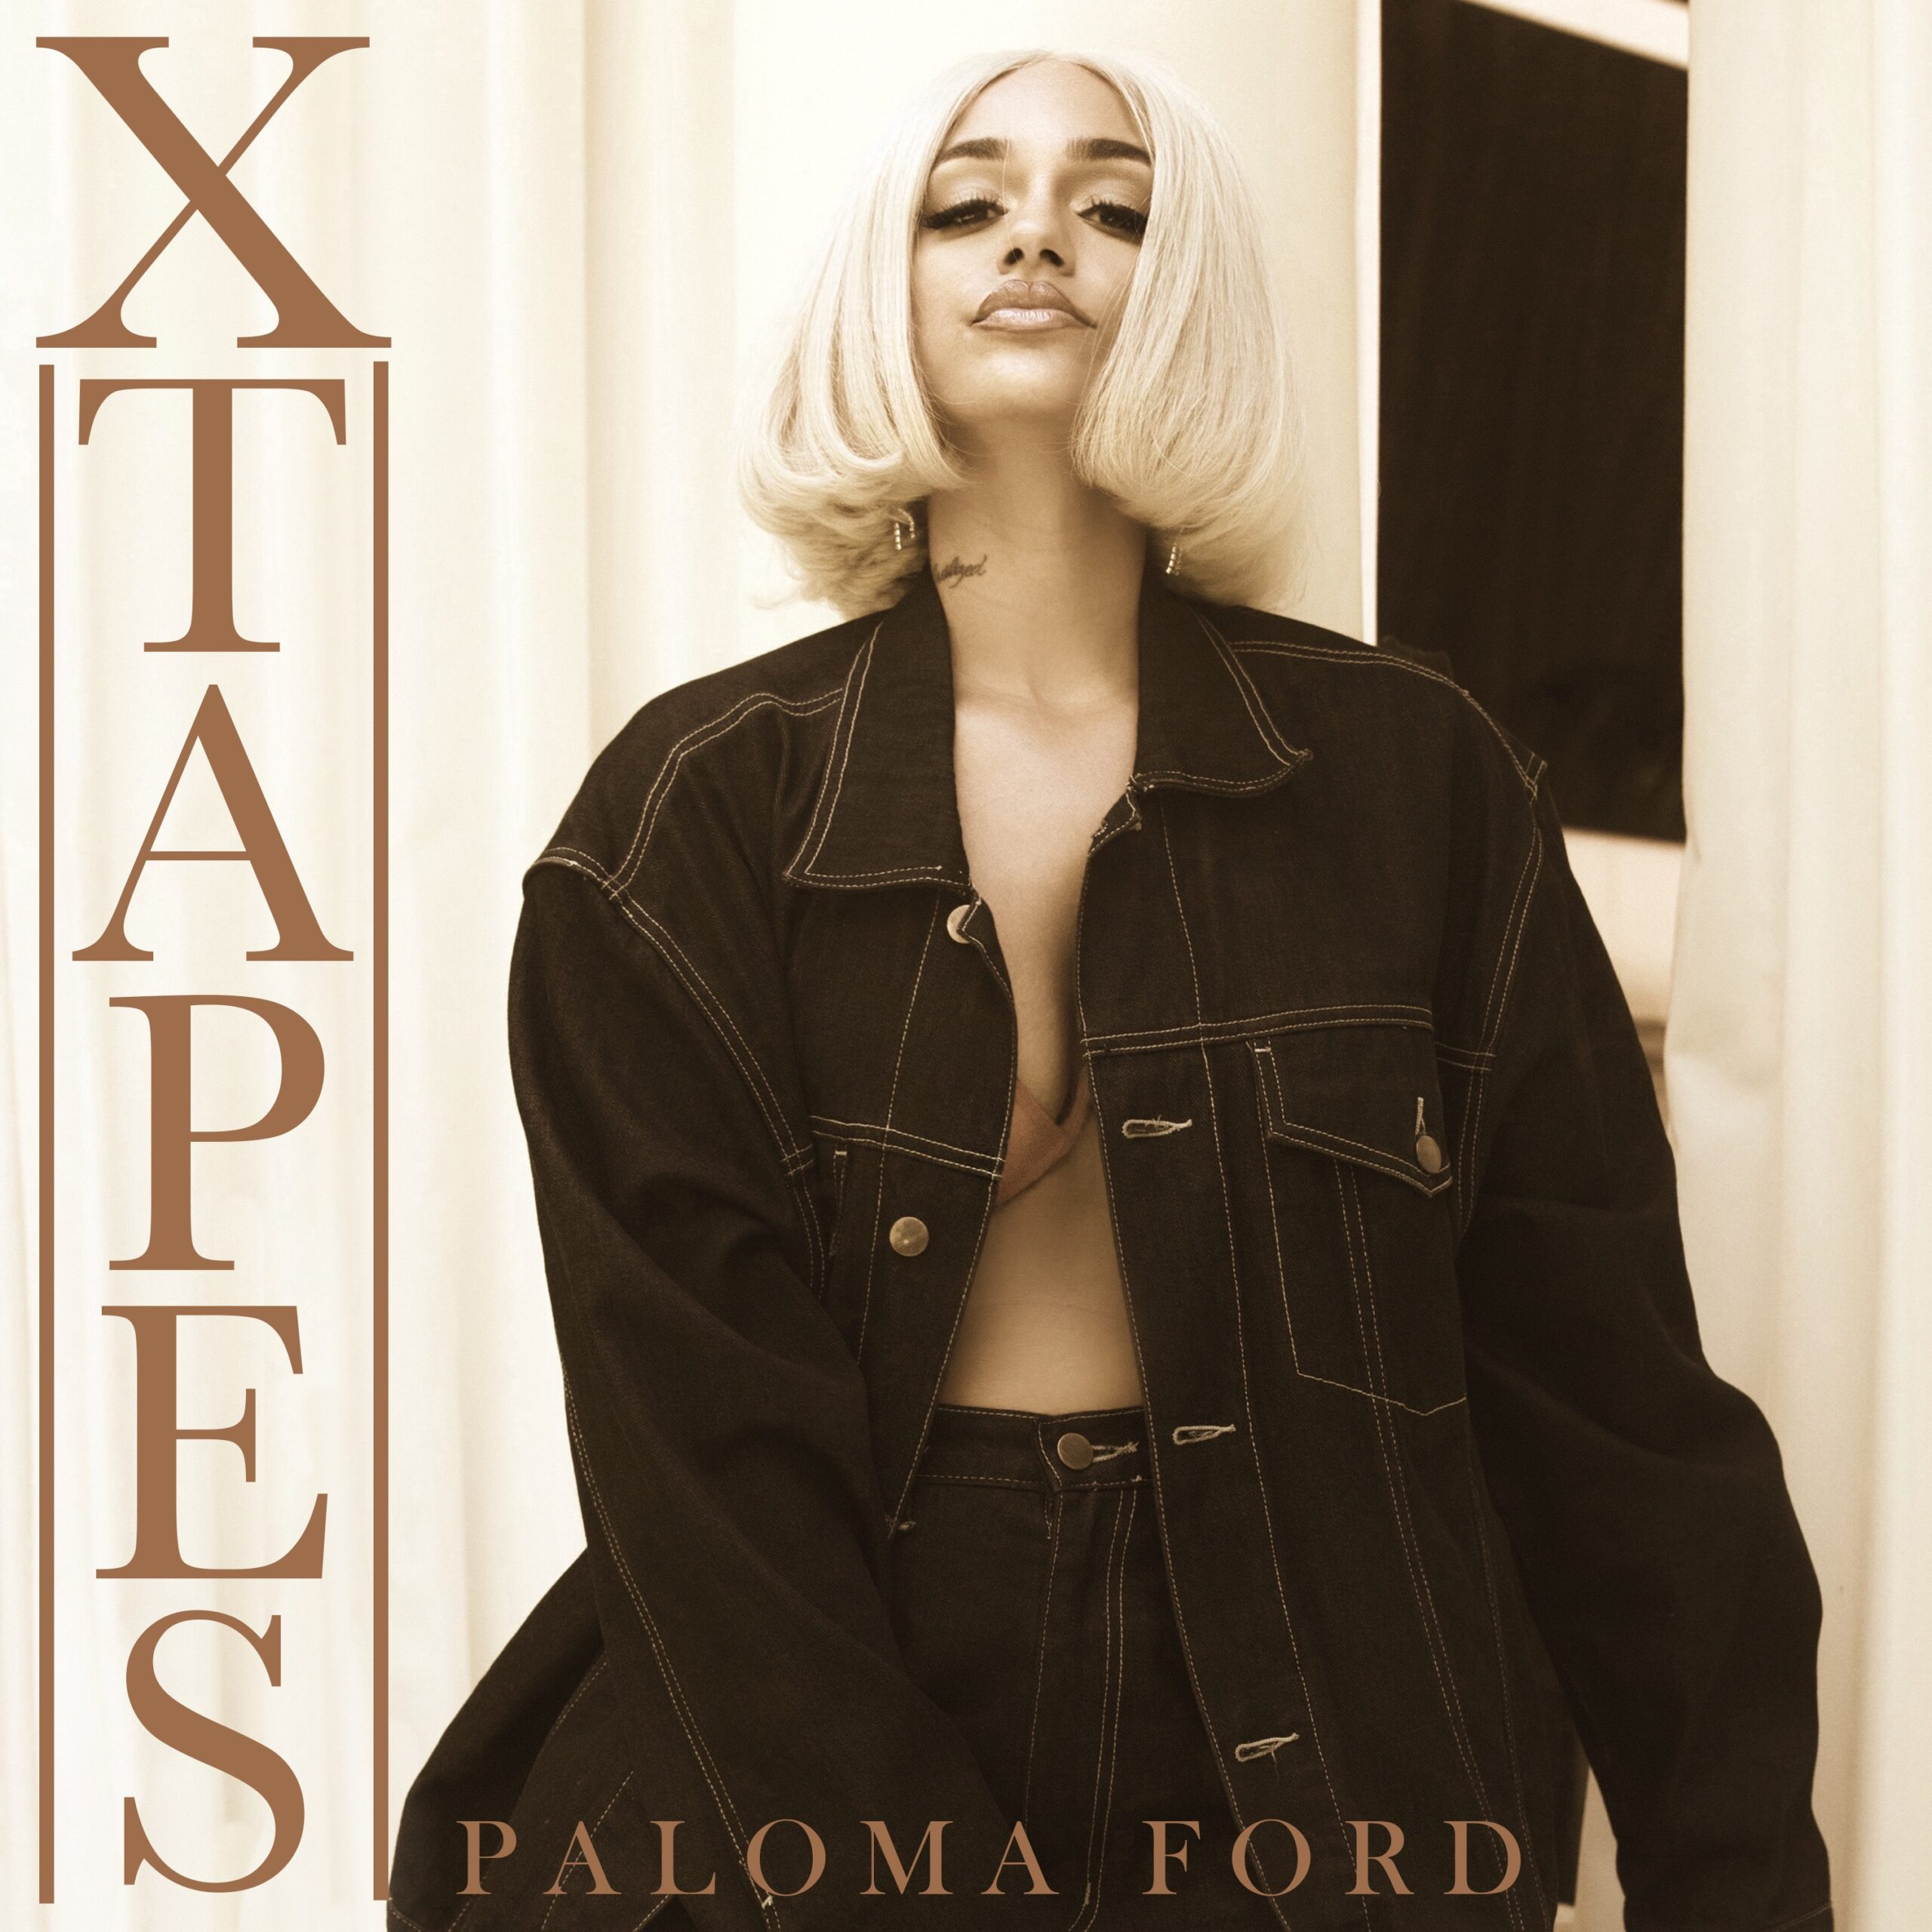 Paloma Ford X Tapes